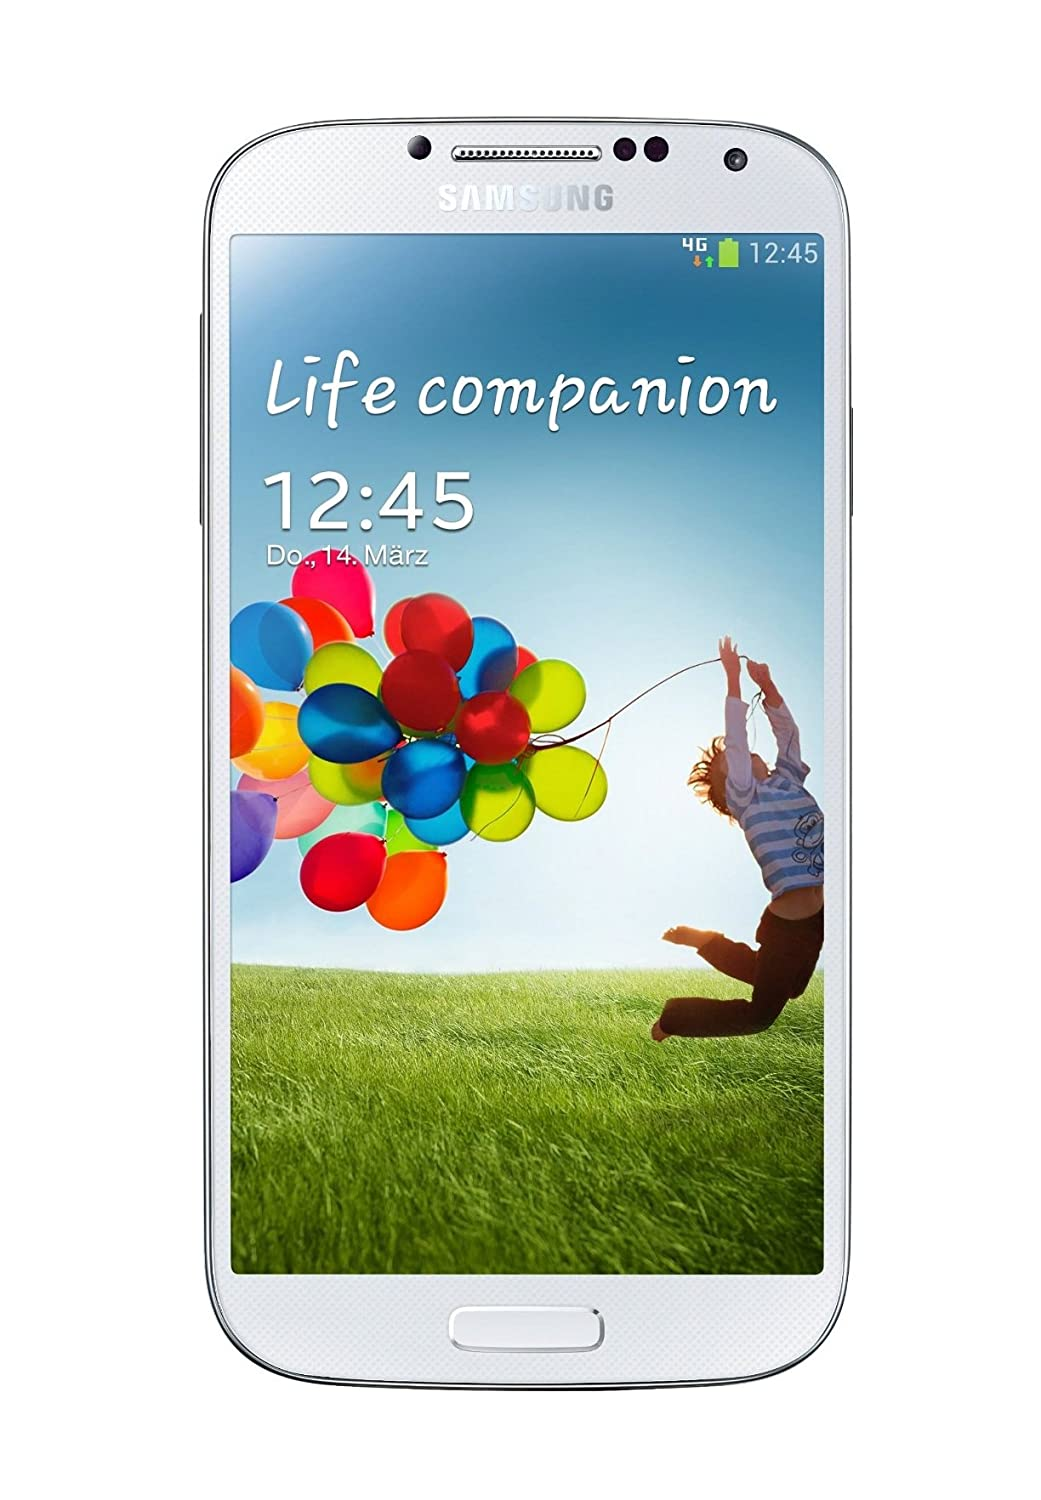 Samsung SCH-i545 - Galaxy S4 16GB Android Smartphone - Unlocked Verizon - White (Certified Refurbished)